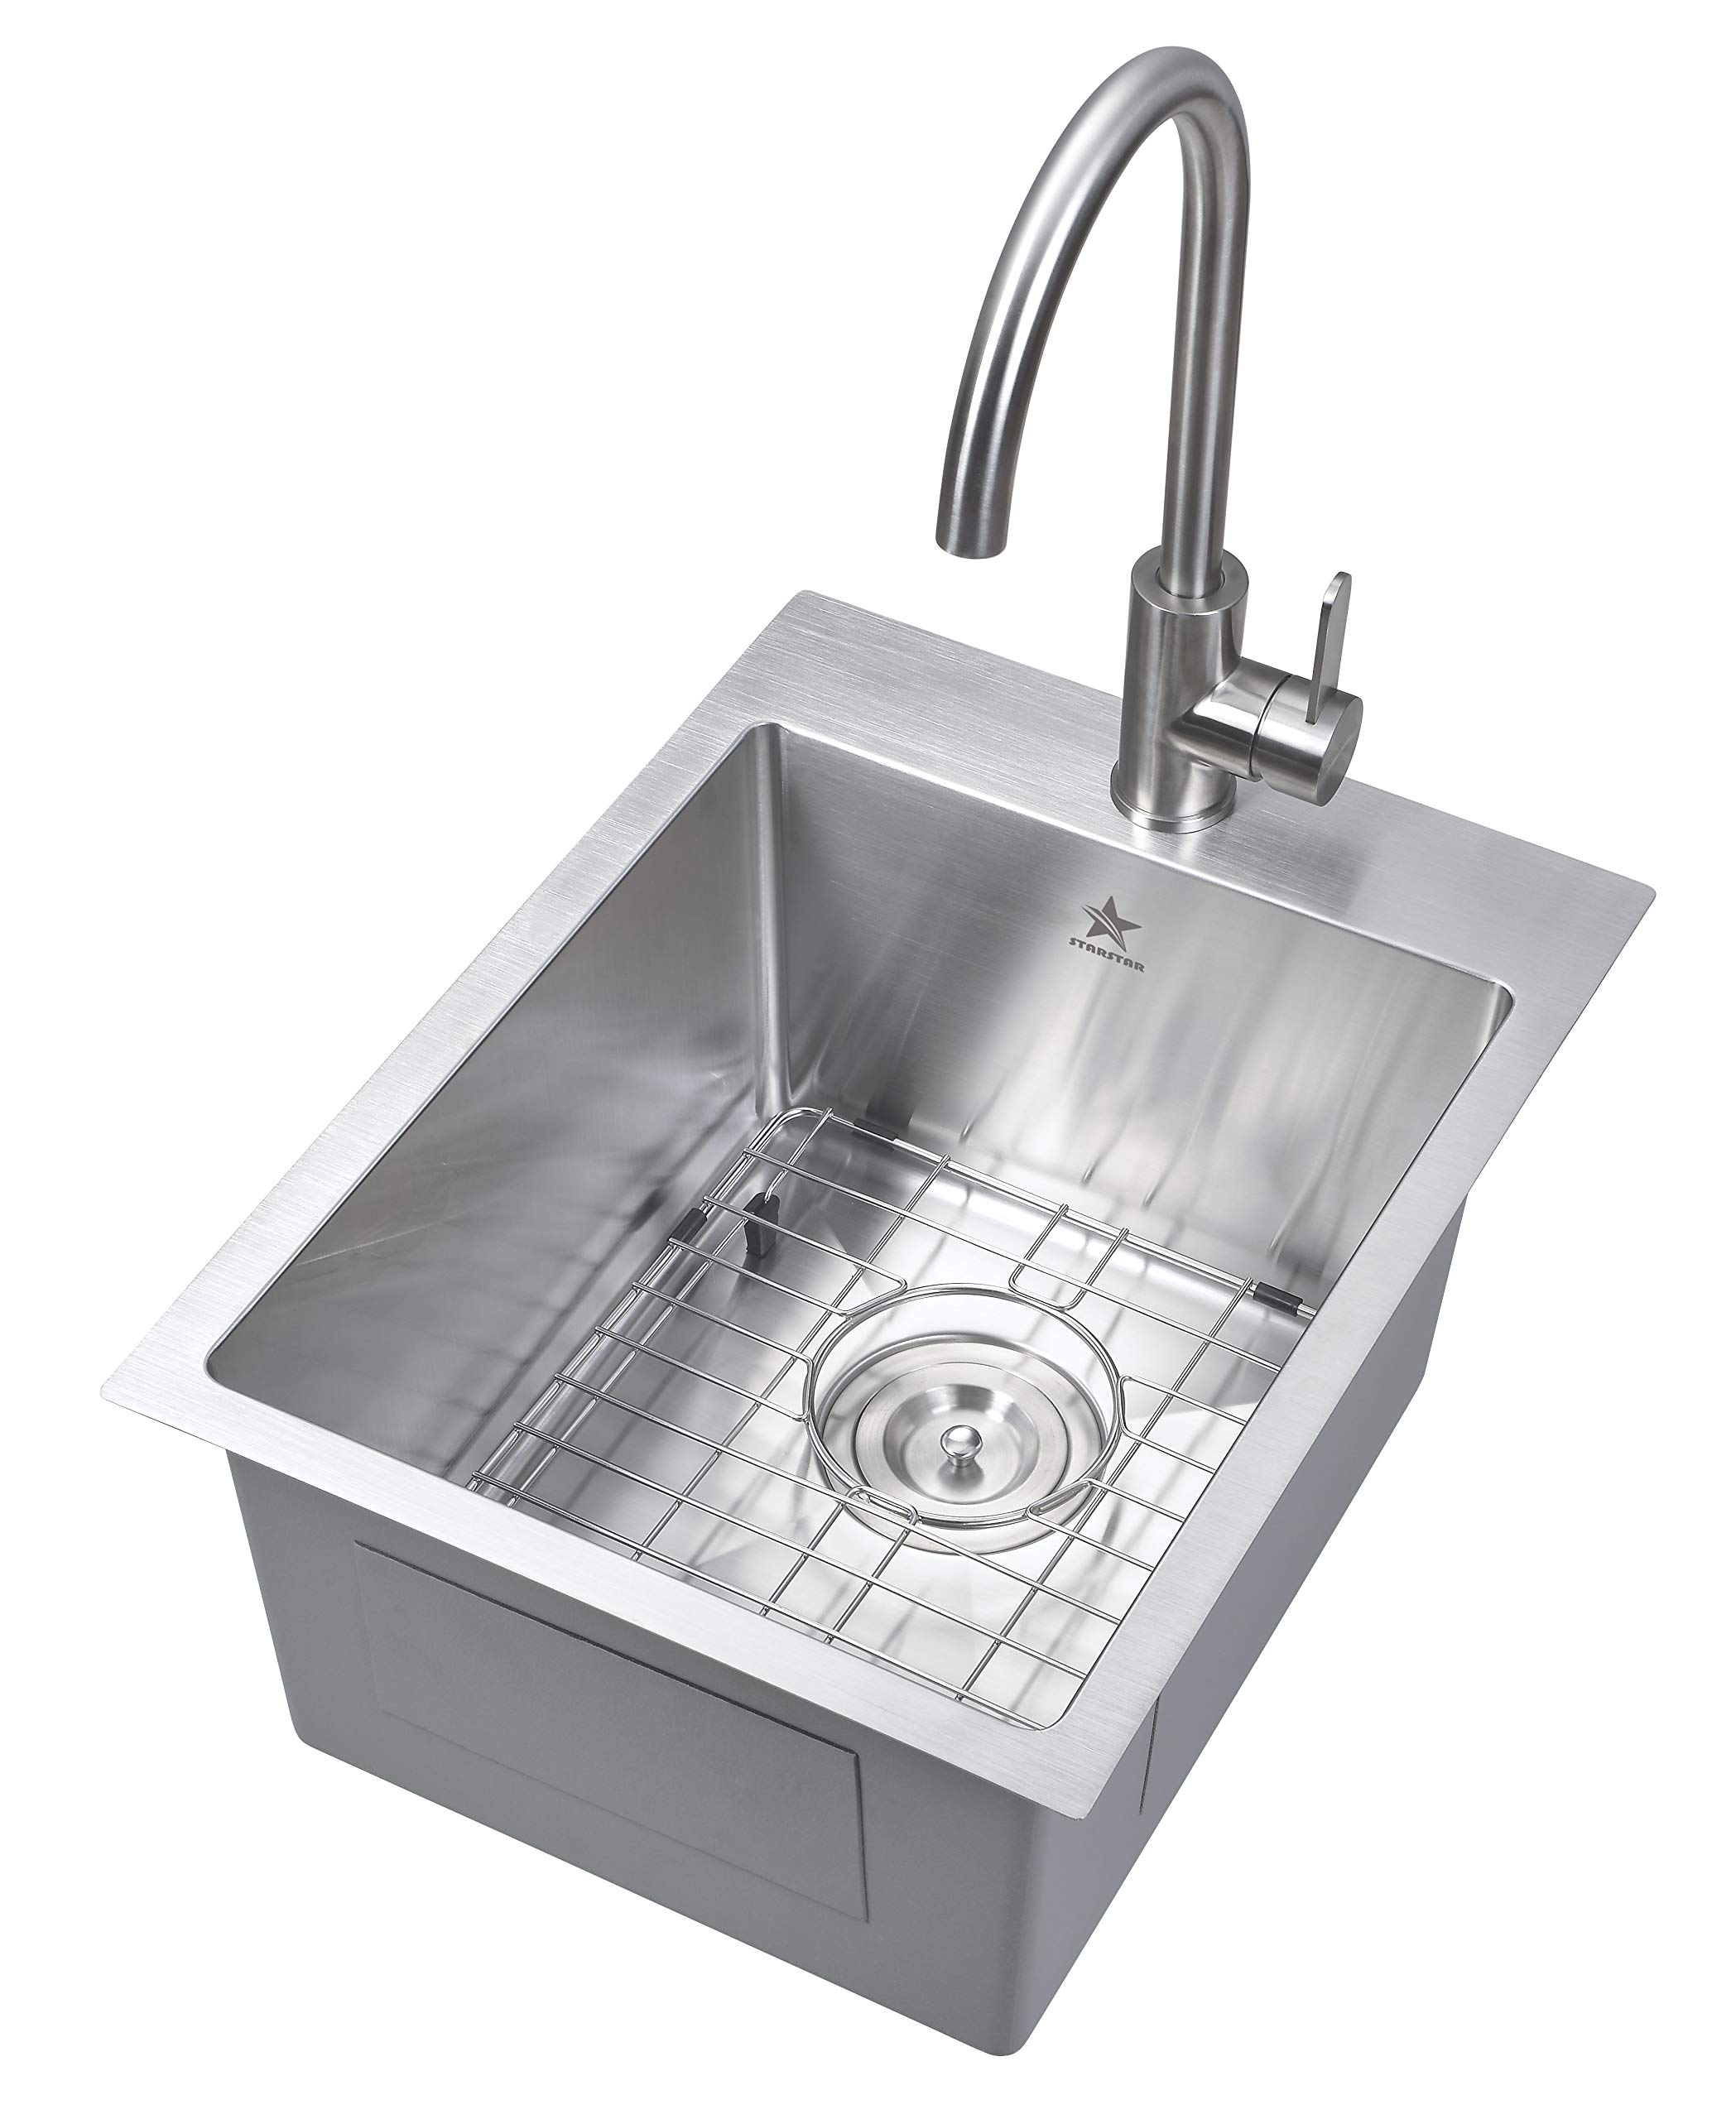 Starstar 15 x 20 inch Drop-in Topmount 304 Stainless Steel Single Bowl Bar/Kitchen/Laundry/Yard/Office Sink (With Grid)